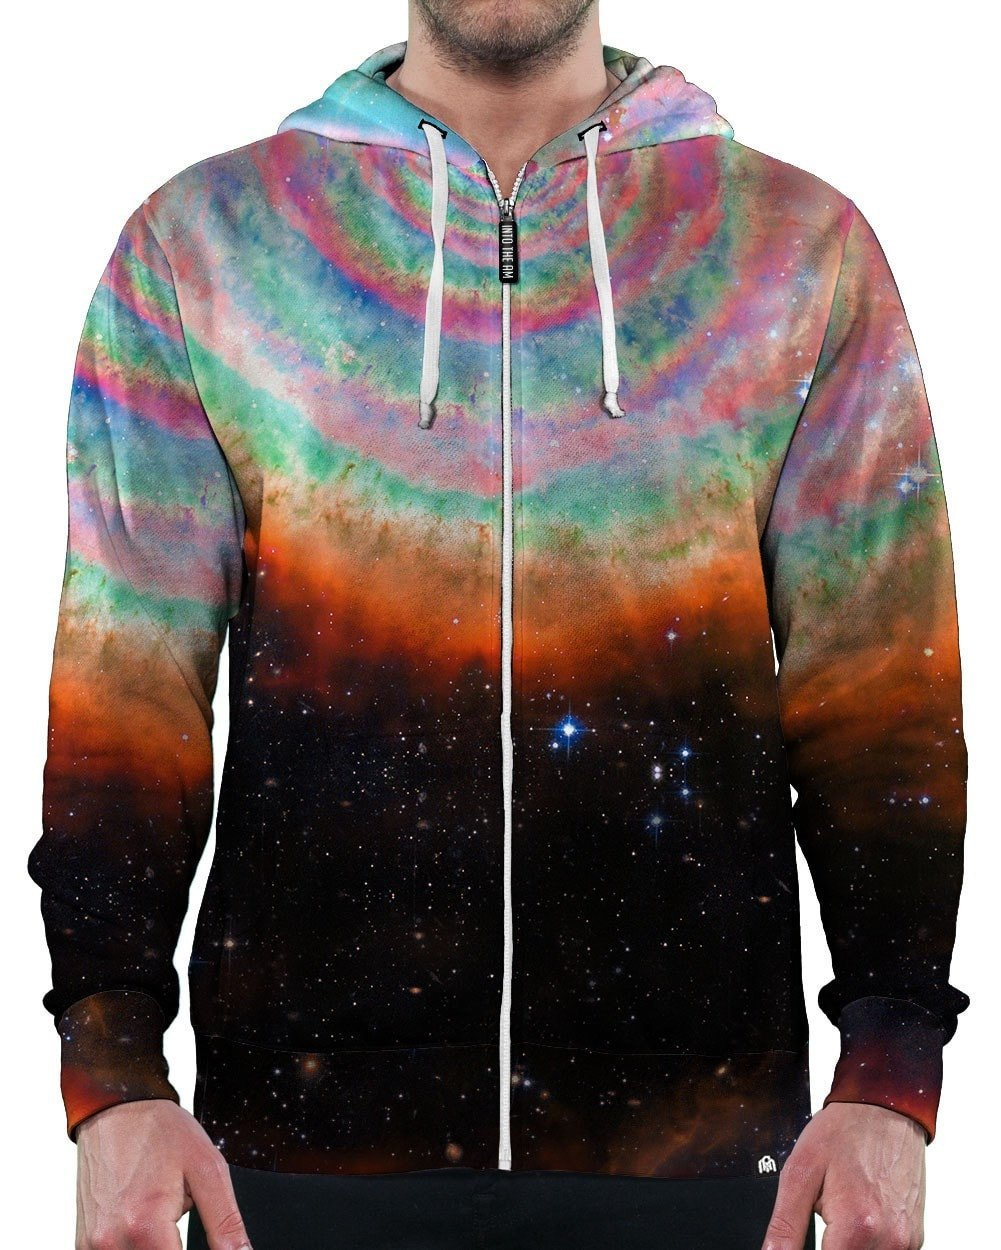 Cosmic Vortex Zip-Up Hoodie